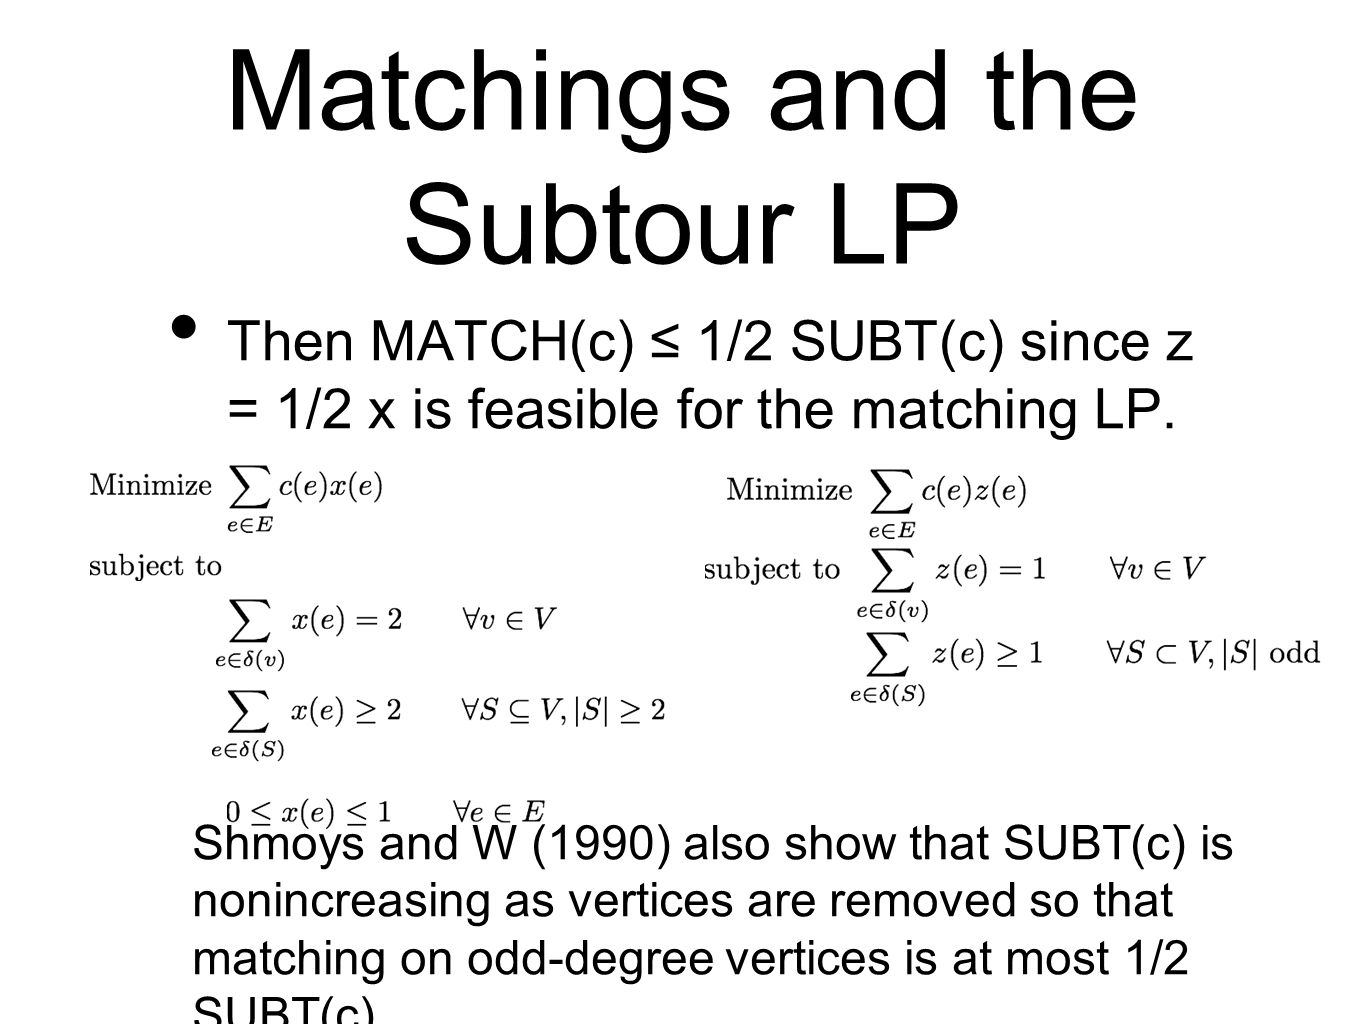 Matchings and the Subtour LP Then MATCH(c) ≤ 1/2 SUBT(c) since z = 1/2 x is feasible for the matching LP.